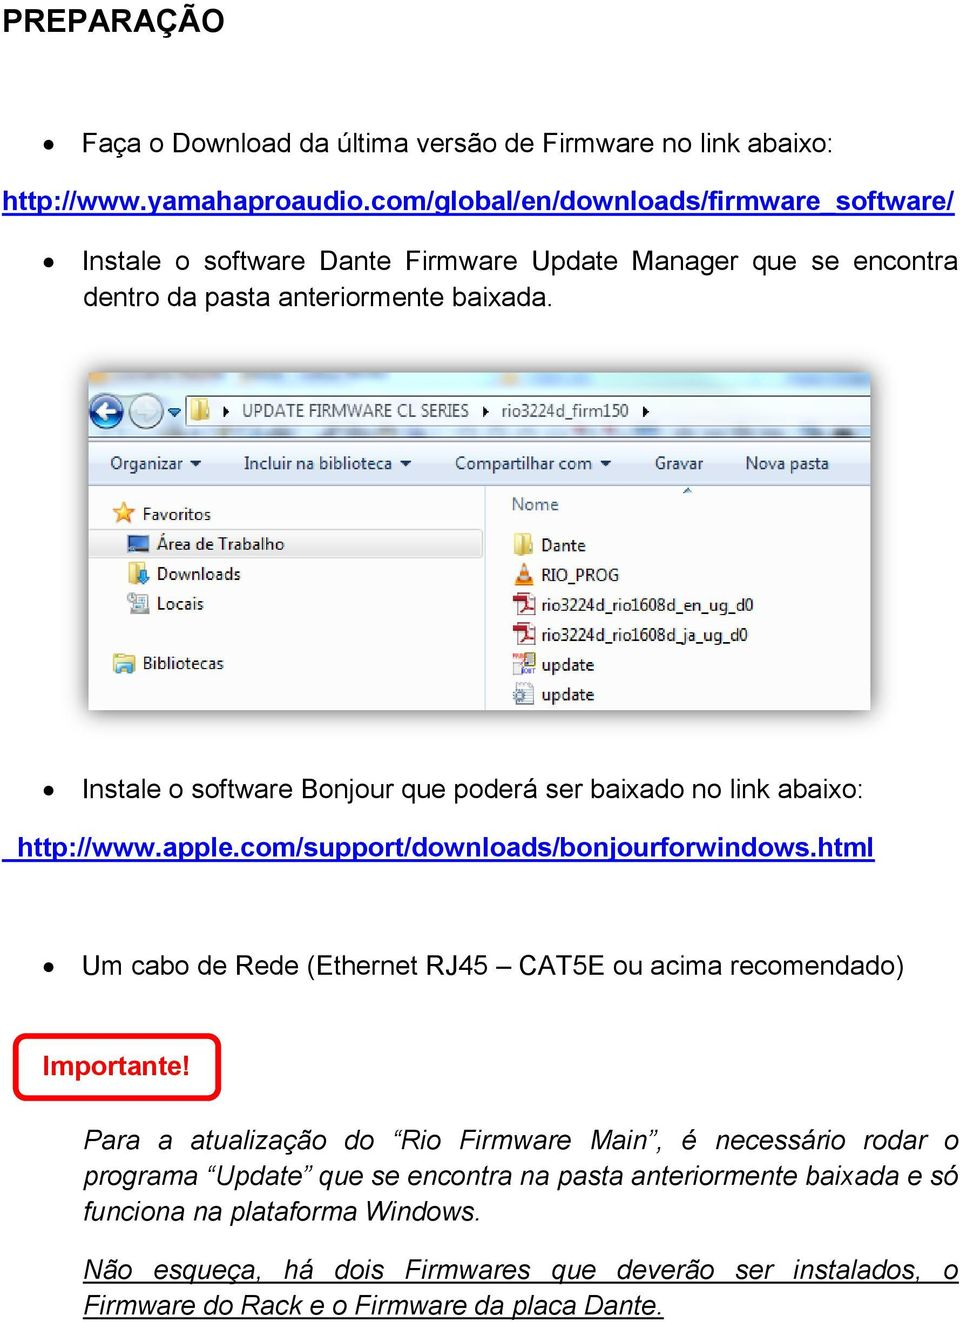 Instale o software Bonjour que poderá ser baixado no link abaixo: http://www.apple.com/support/downloads/bonjourforwindows.